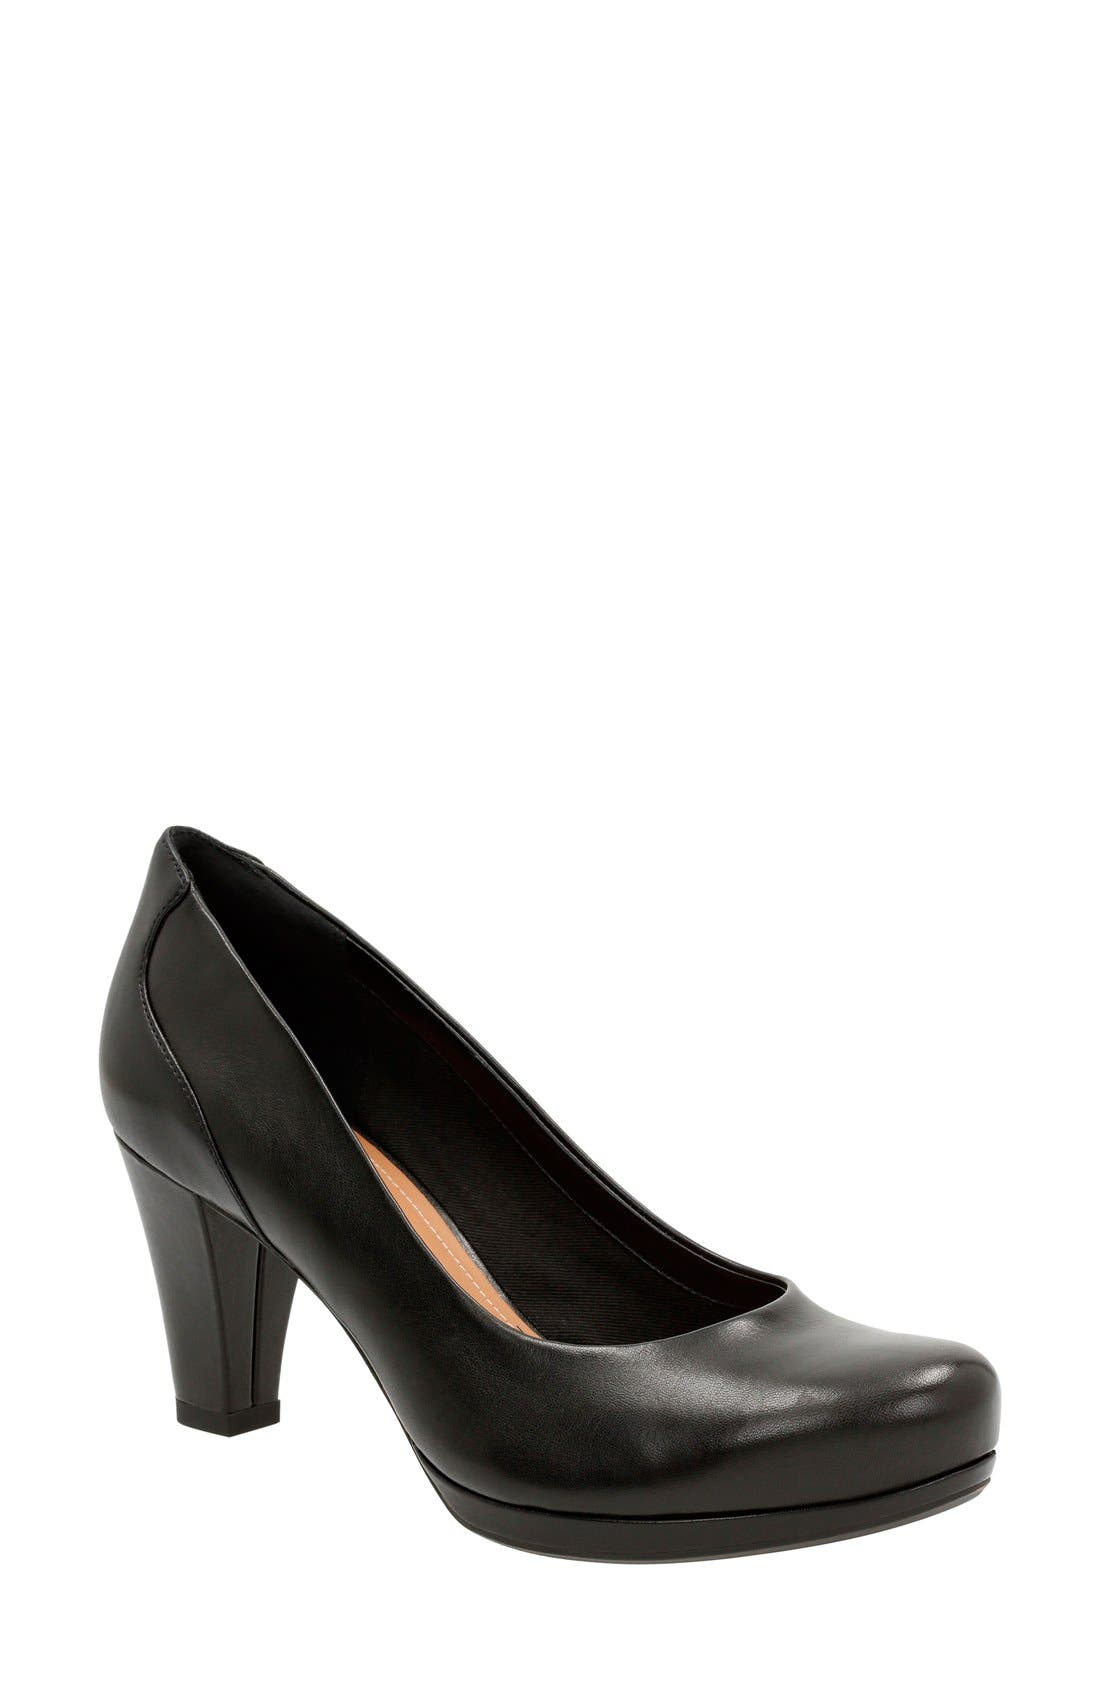 'Chorus Chic' Round Toe Pump,                             Main thumbnail 1, color,                             Black Leather